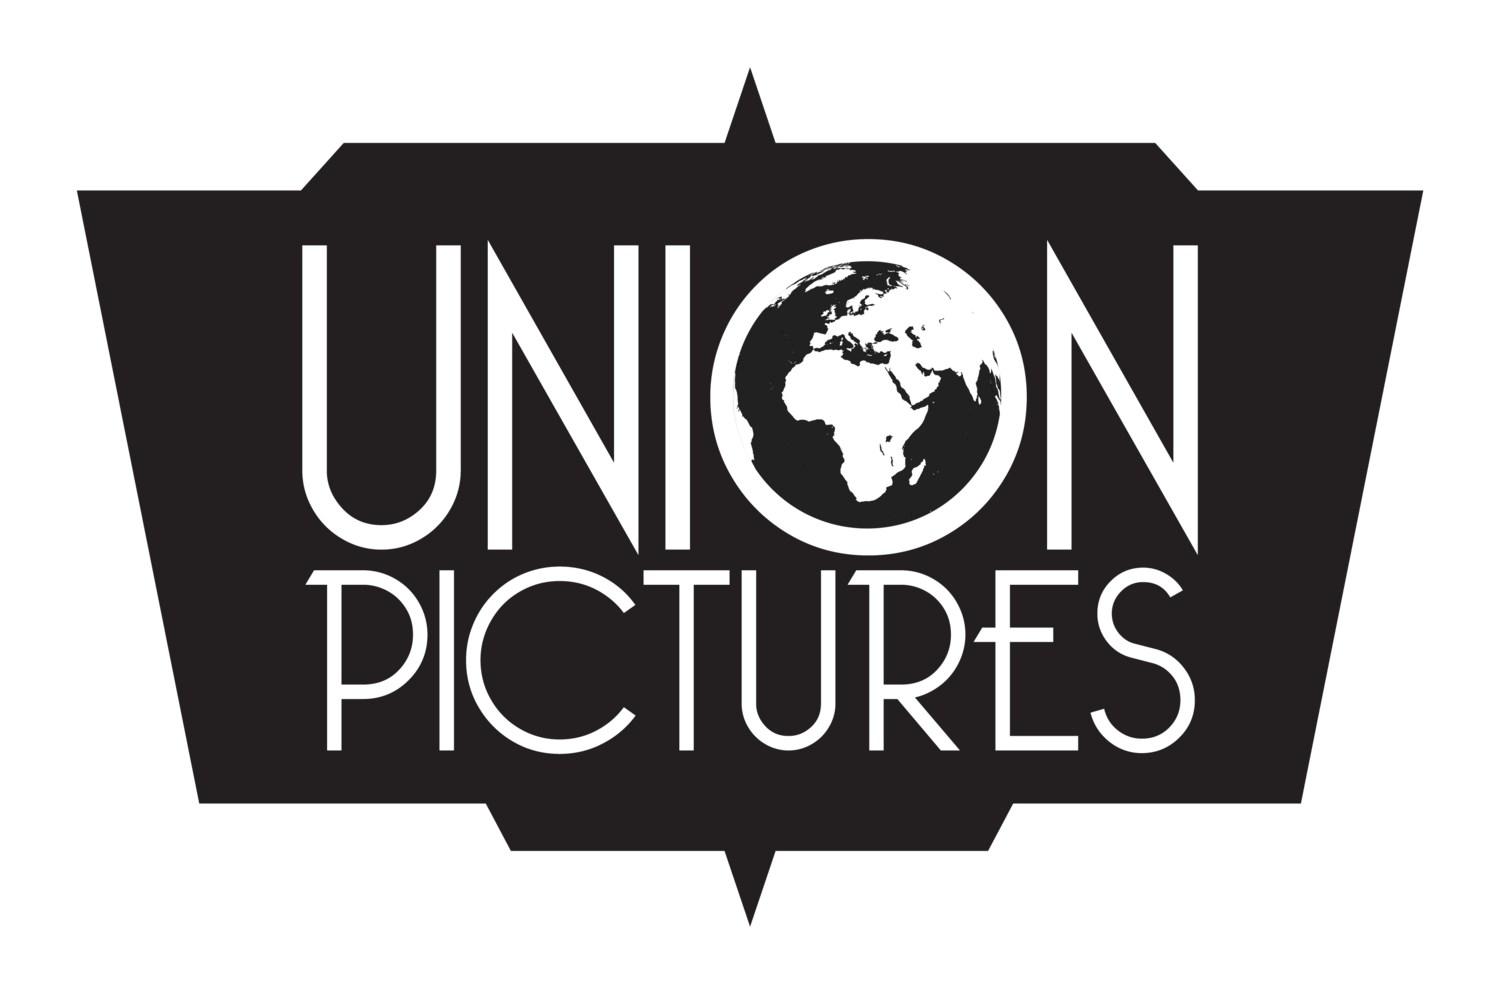 UNION PICTURES